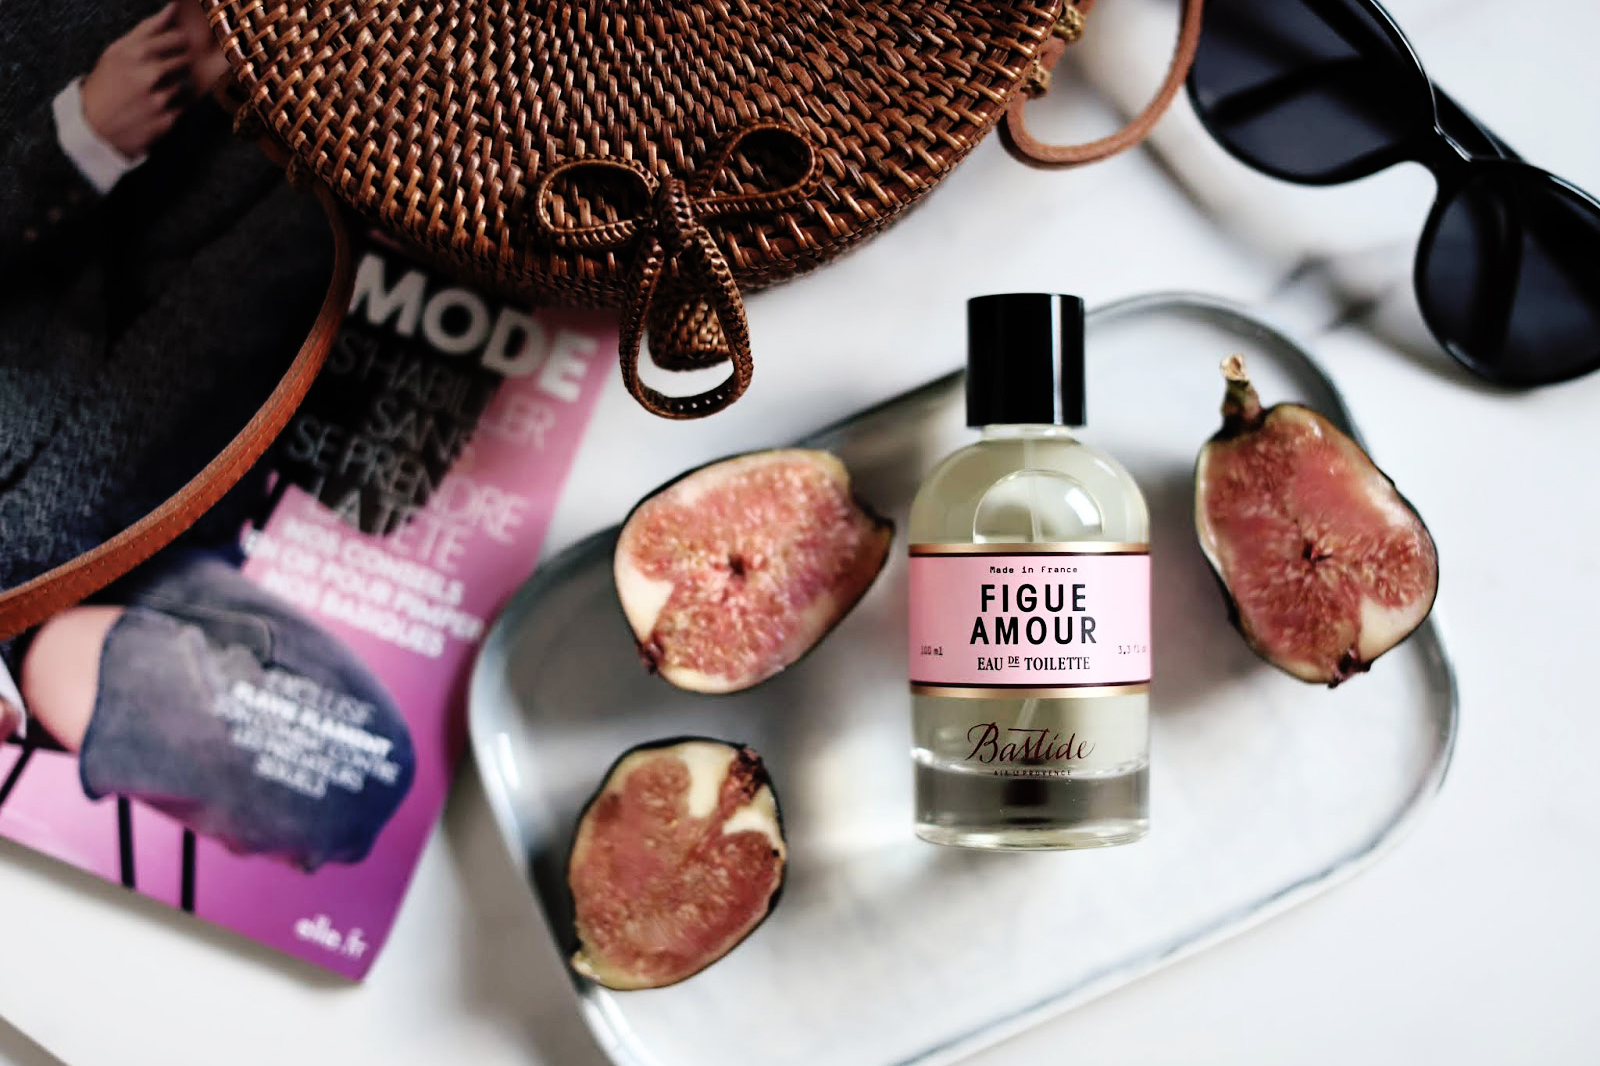 bastide figue amour parfum avis test